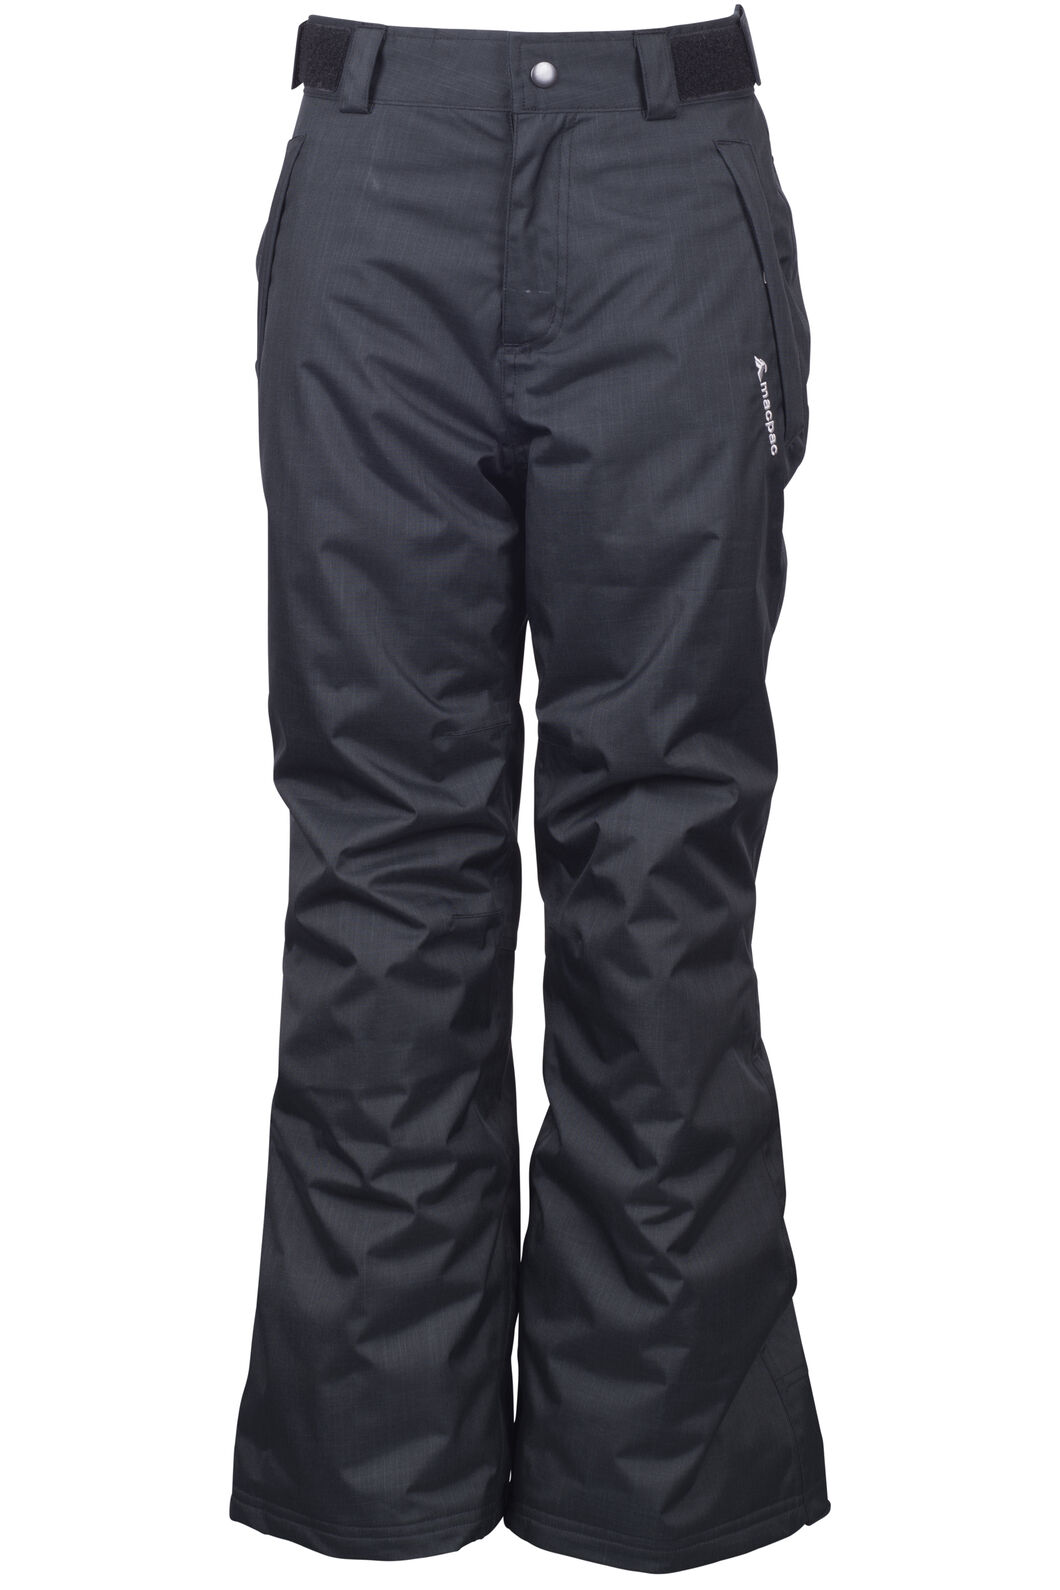 Macpac Spree Reflex™ Ski Pants — Kids', Black, hi-res